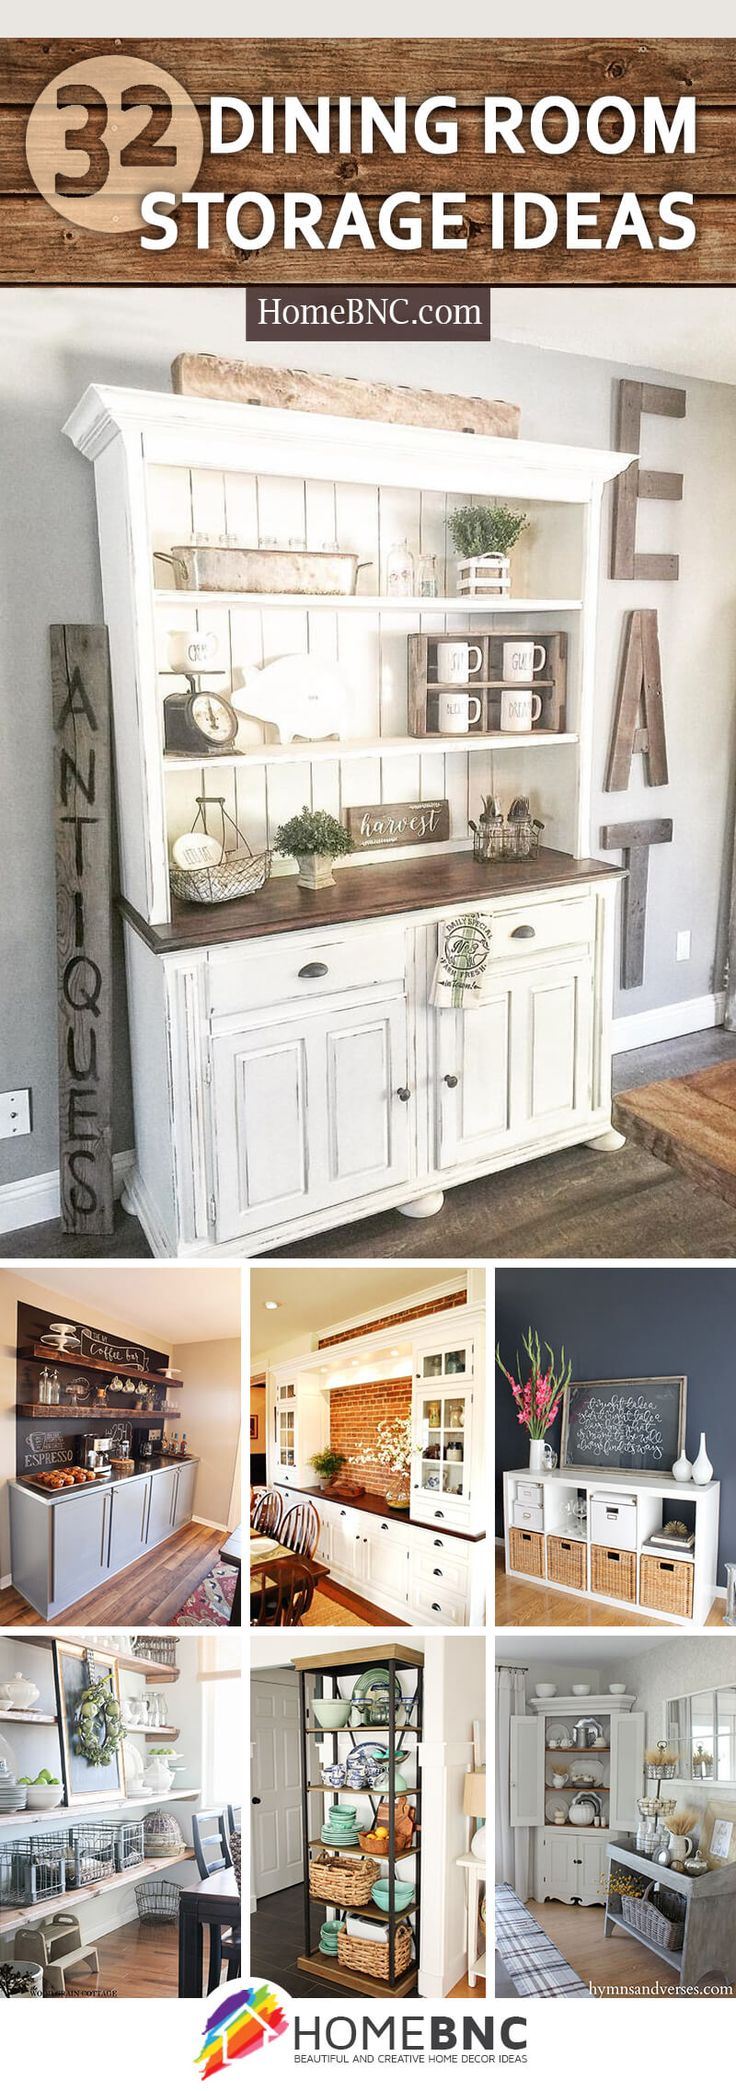 32 Best Dining Room Storage Ideas If You Are Looking For Stylish Alternatives